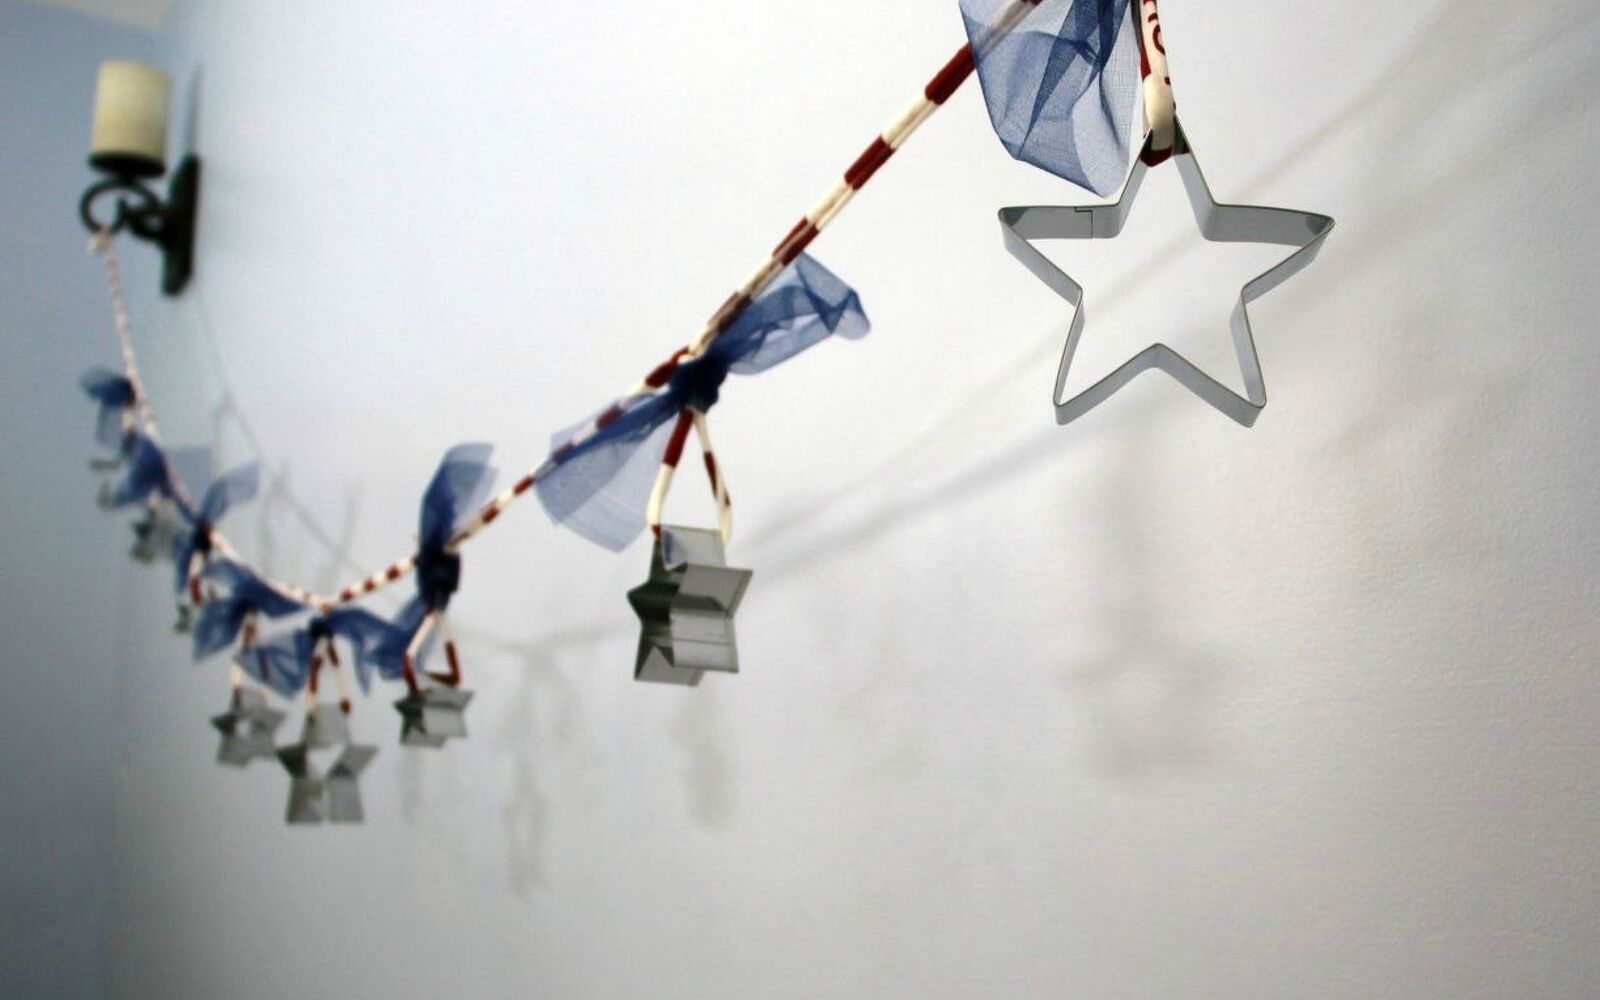 s 13 july 4th decorations that will blow your bbq guests away, crafts, outdoor living, seasonal holiday decor, Hang a garland of Dollar Store cookie cutters